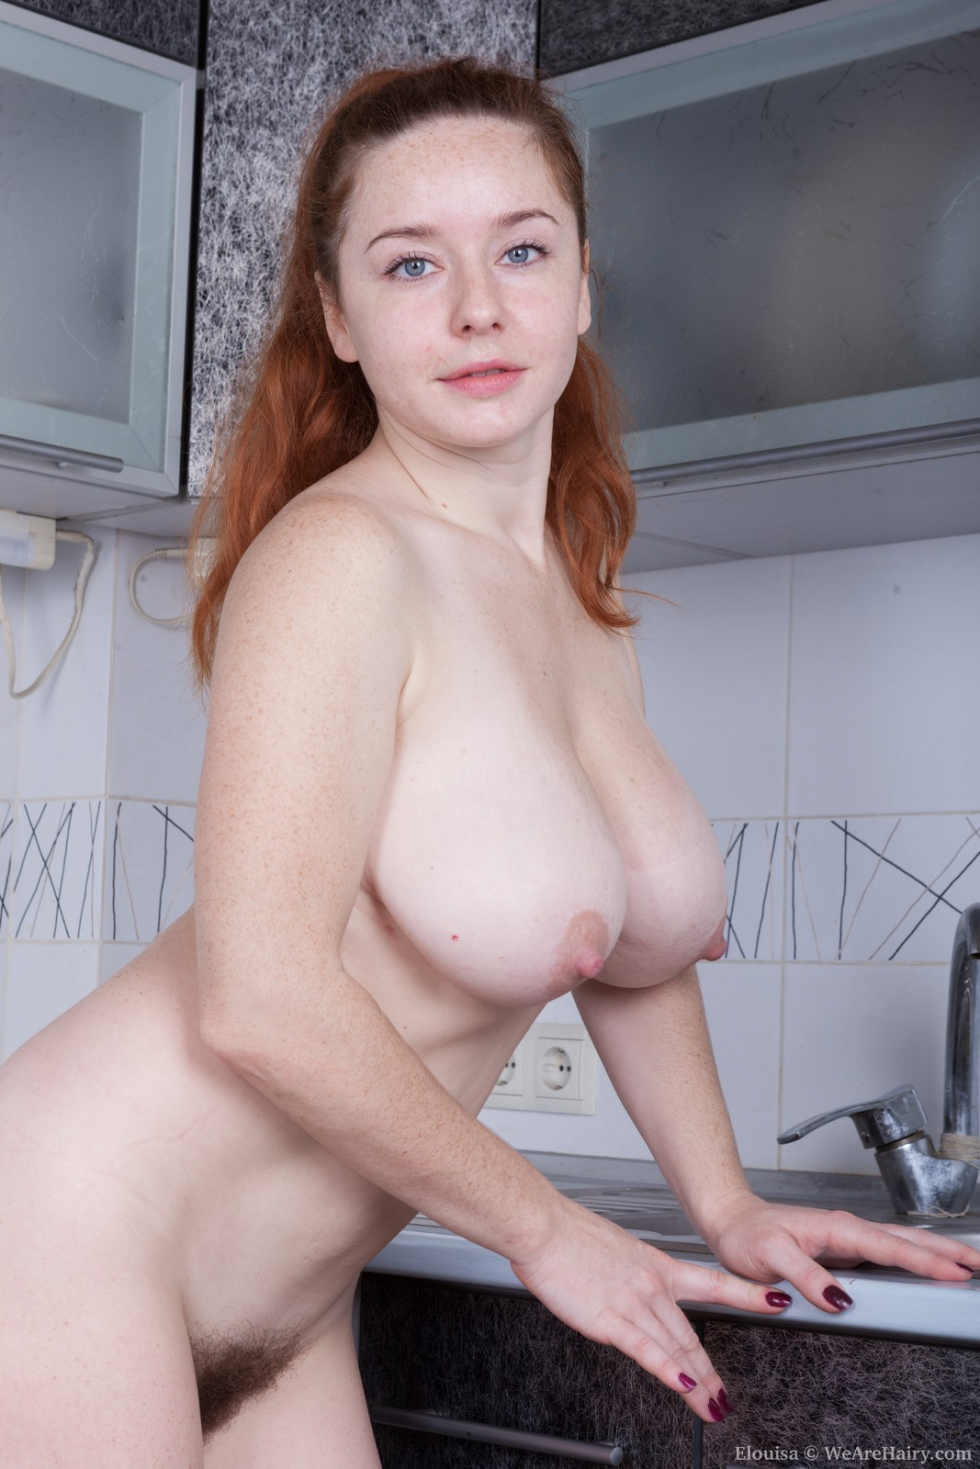 Baby boom strips and masturbates by her mirror 4